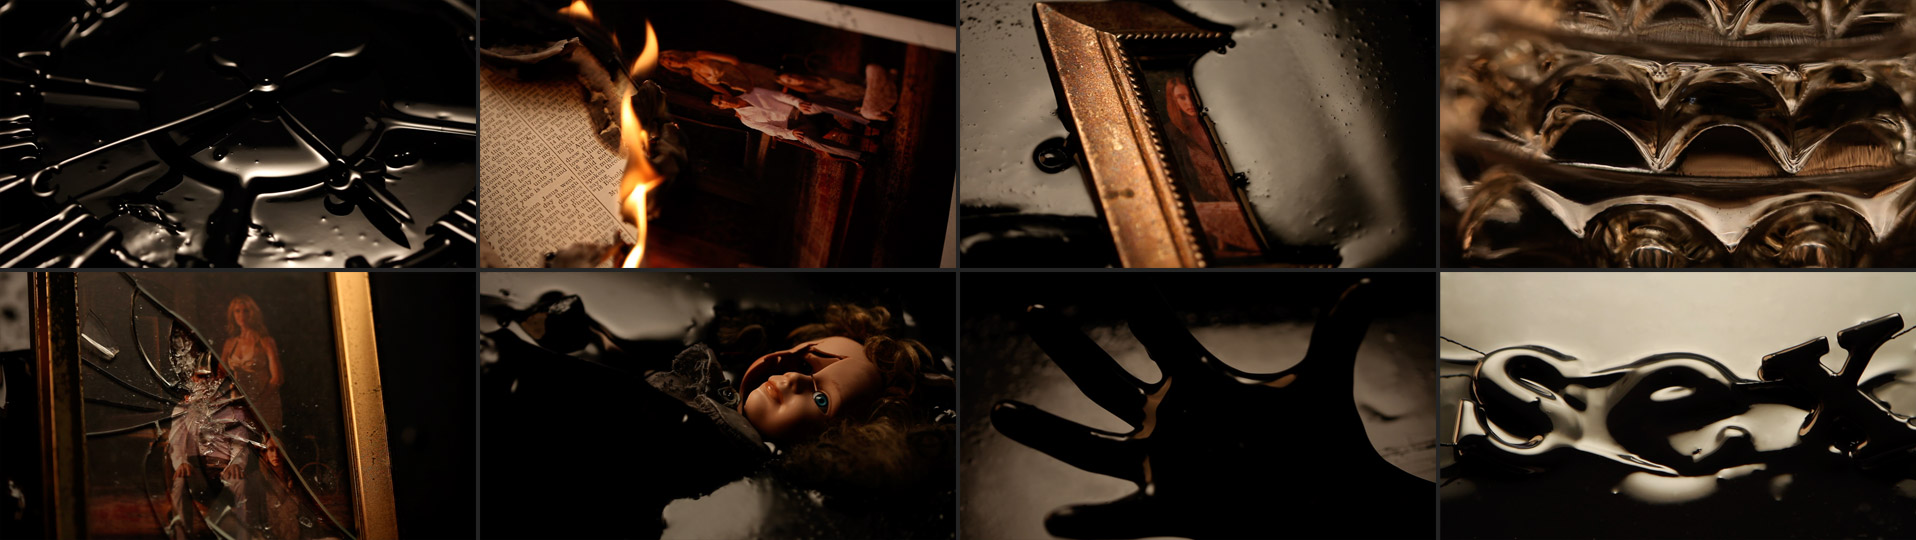 Salem Jones FX American Horror Story Motion Graphics Promo